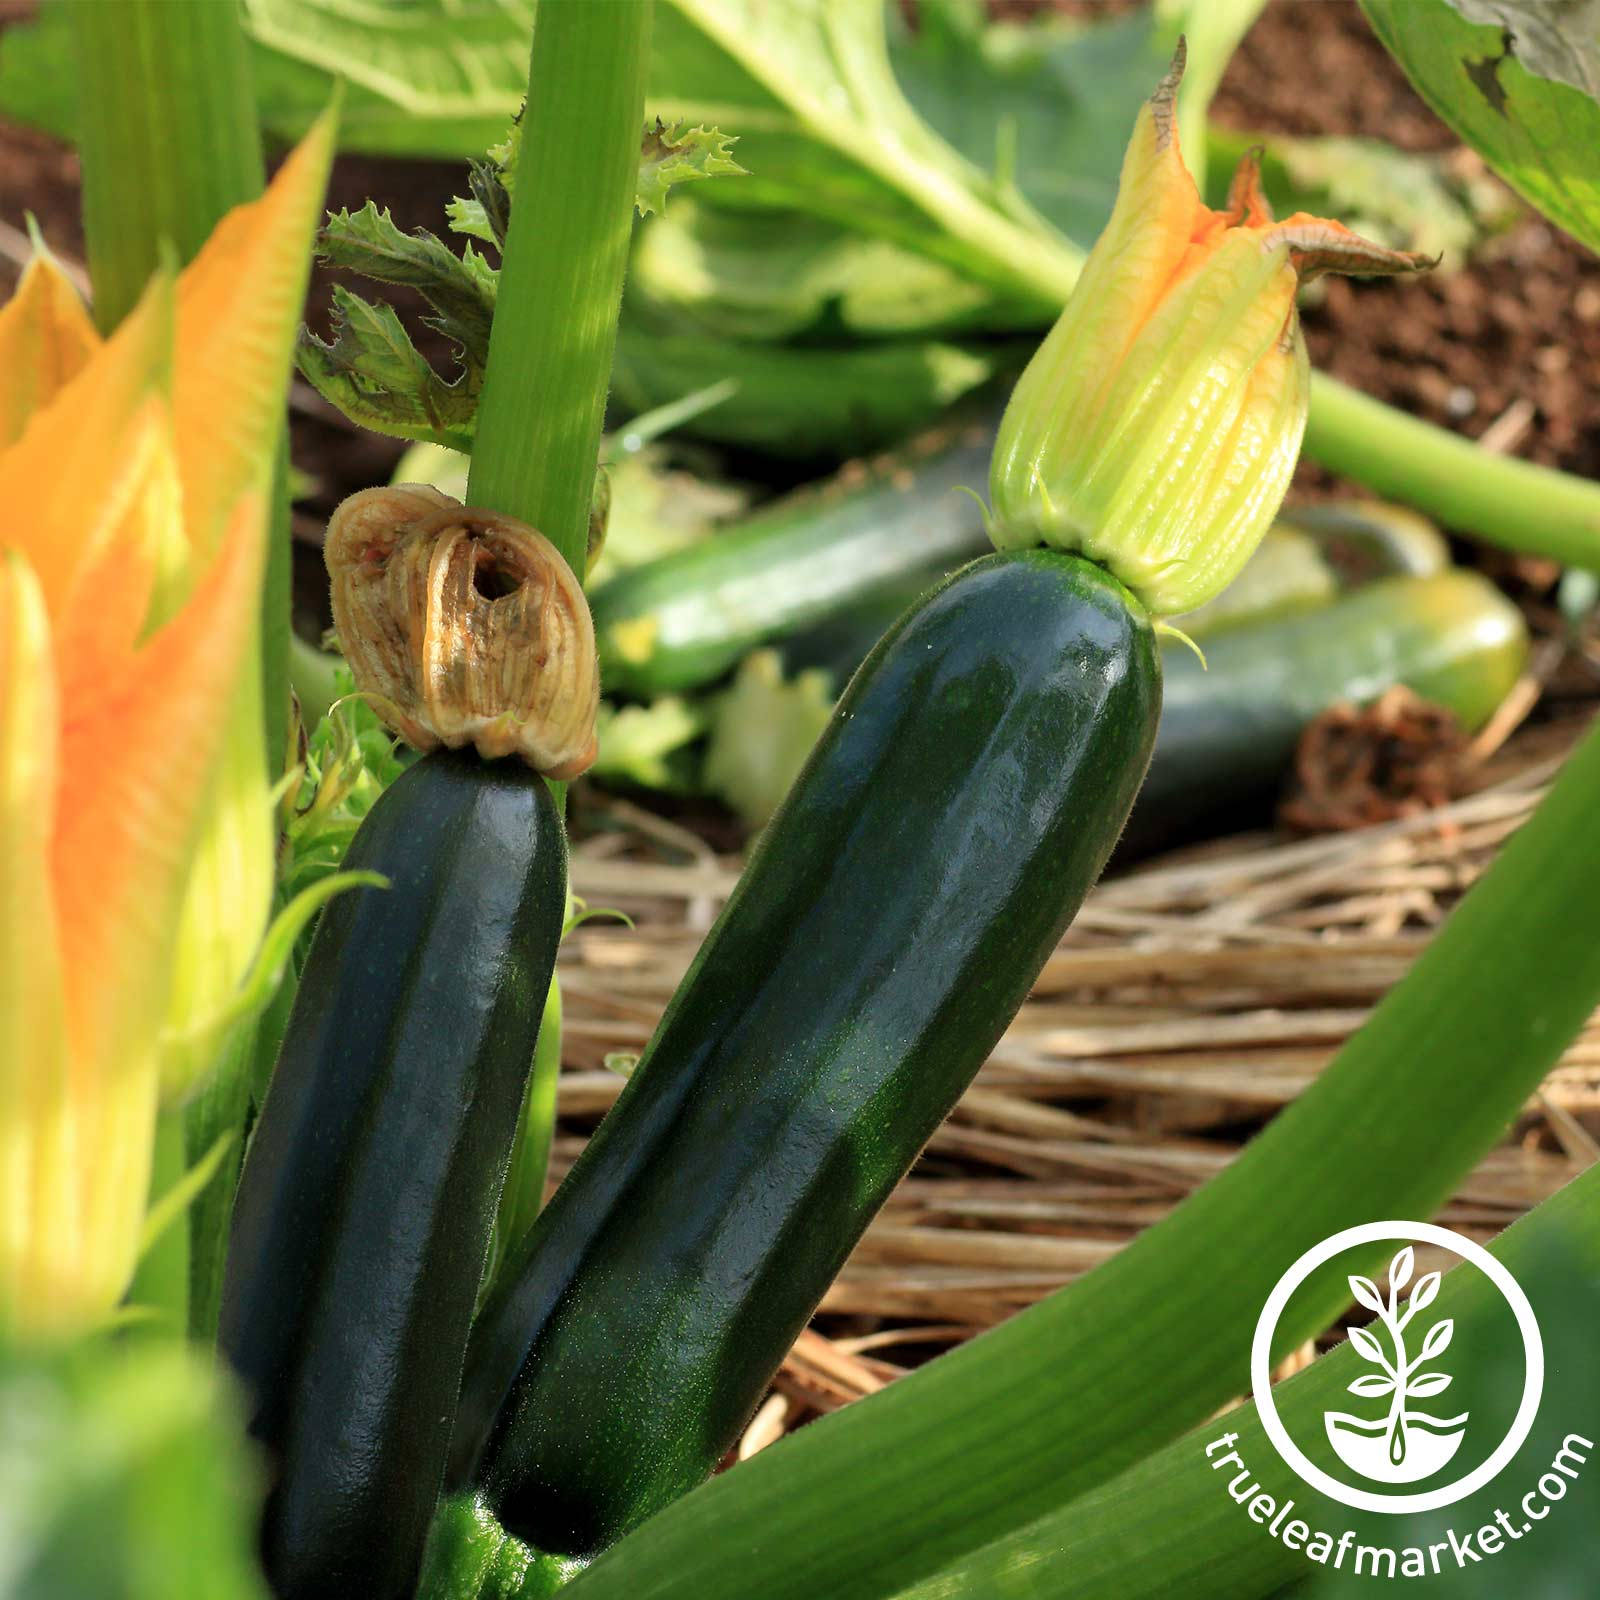 Squash - Summer - Zucchini Black Beauty (organic)